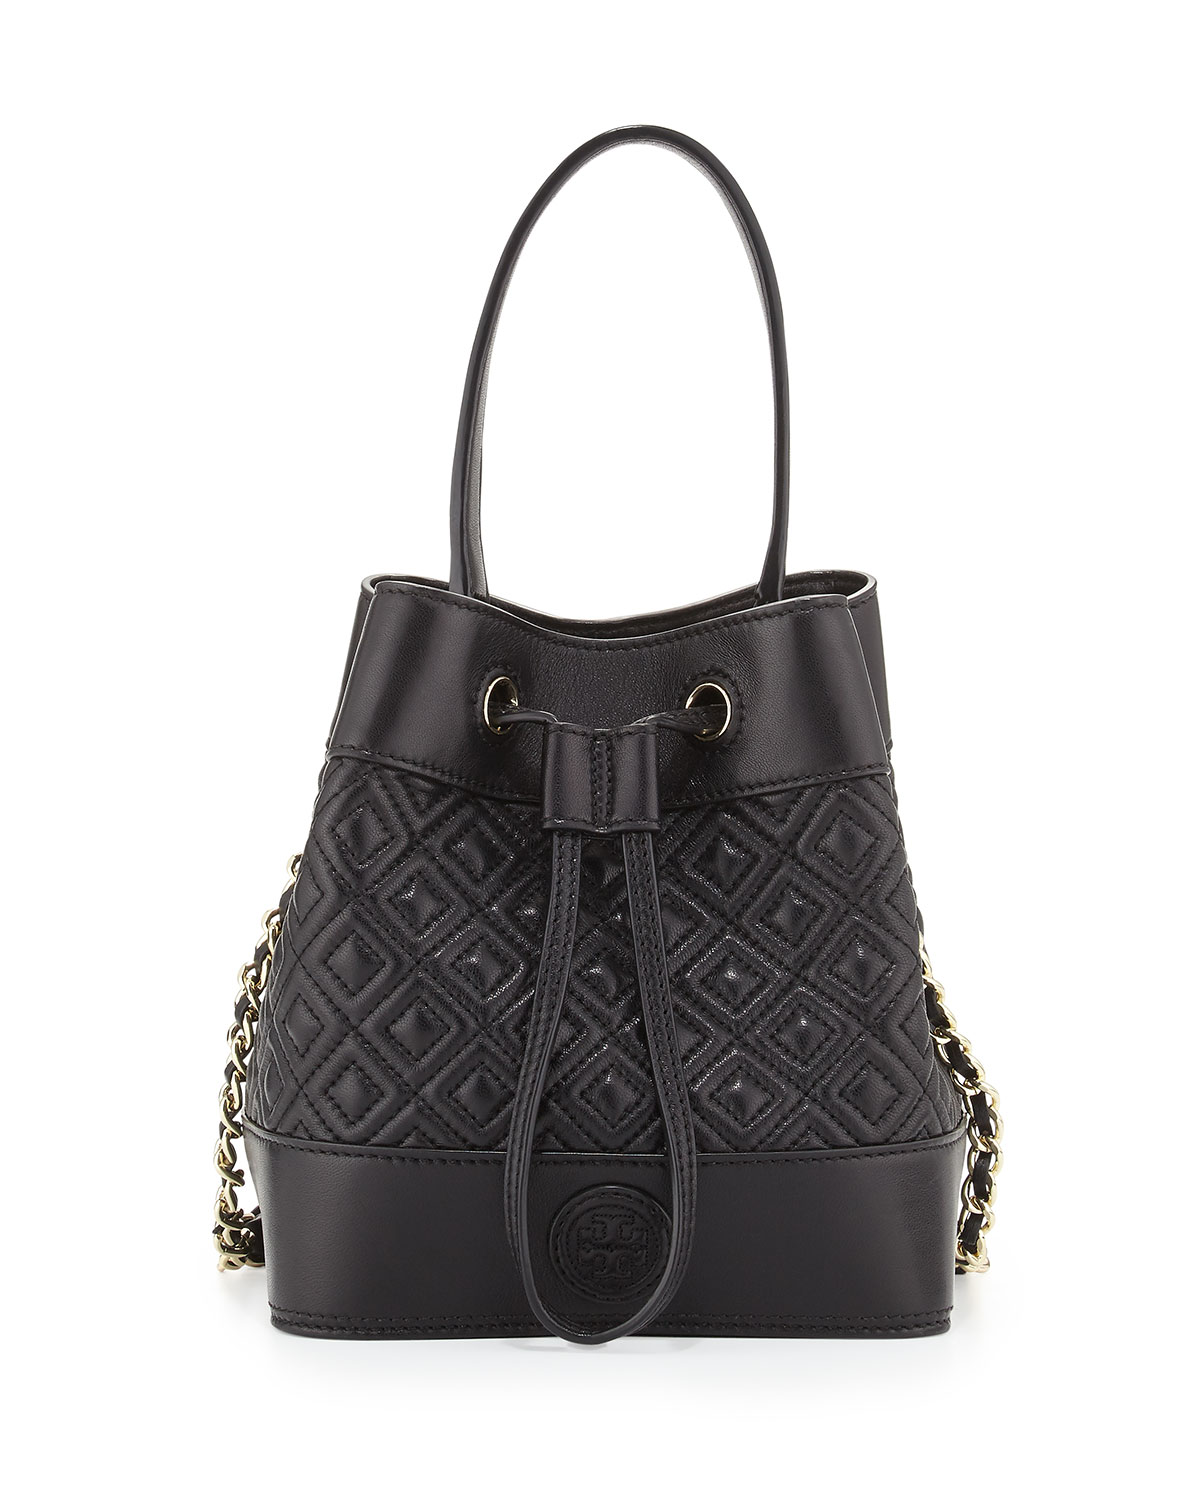 3019d58425d Tory Burch Marion Quilted Mini Bucket Bag, Black | Neiman Marcus